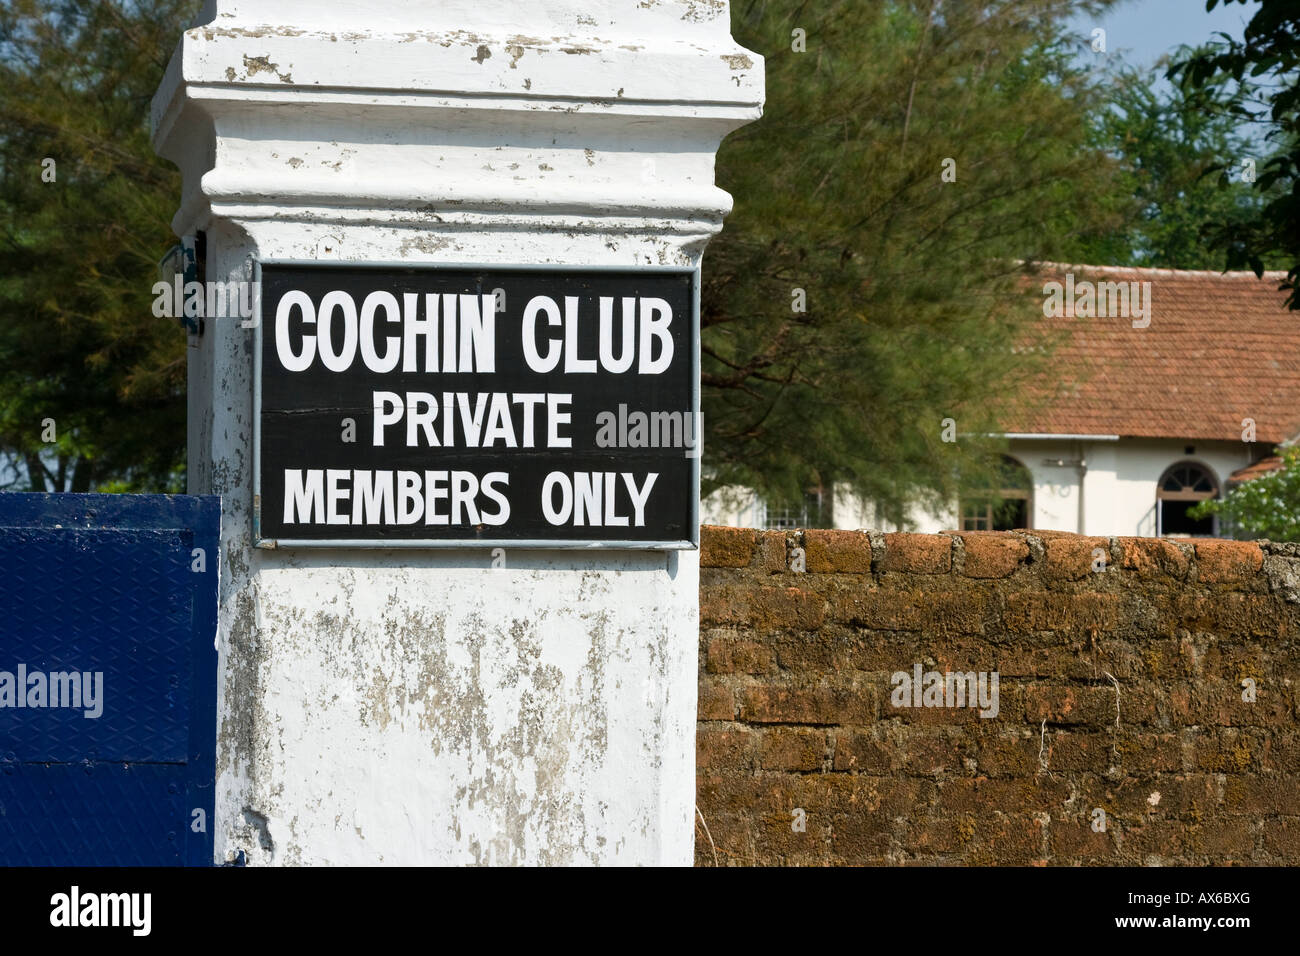 Cochin Members Only Private Club in Cochin India - Stock Image